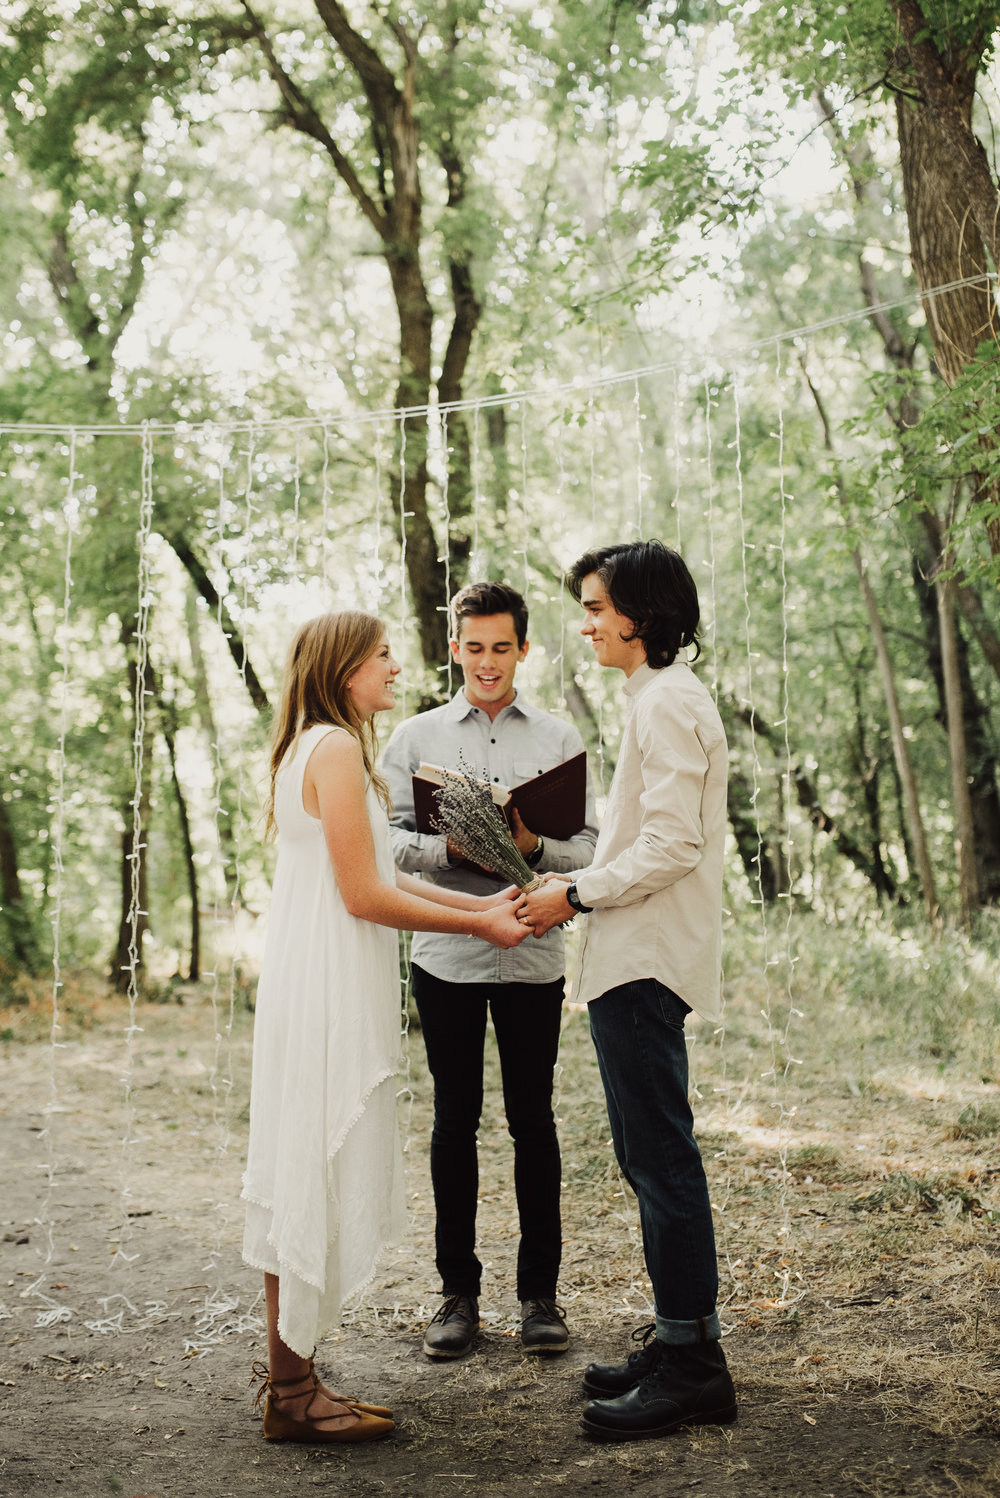 small-wedding-ceremony-in-the-woods.jpg